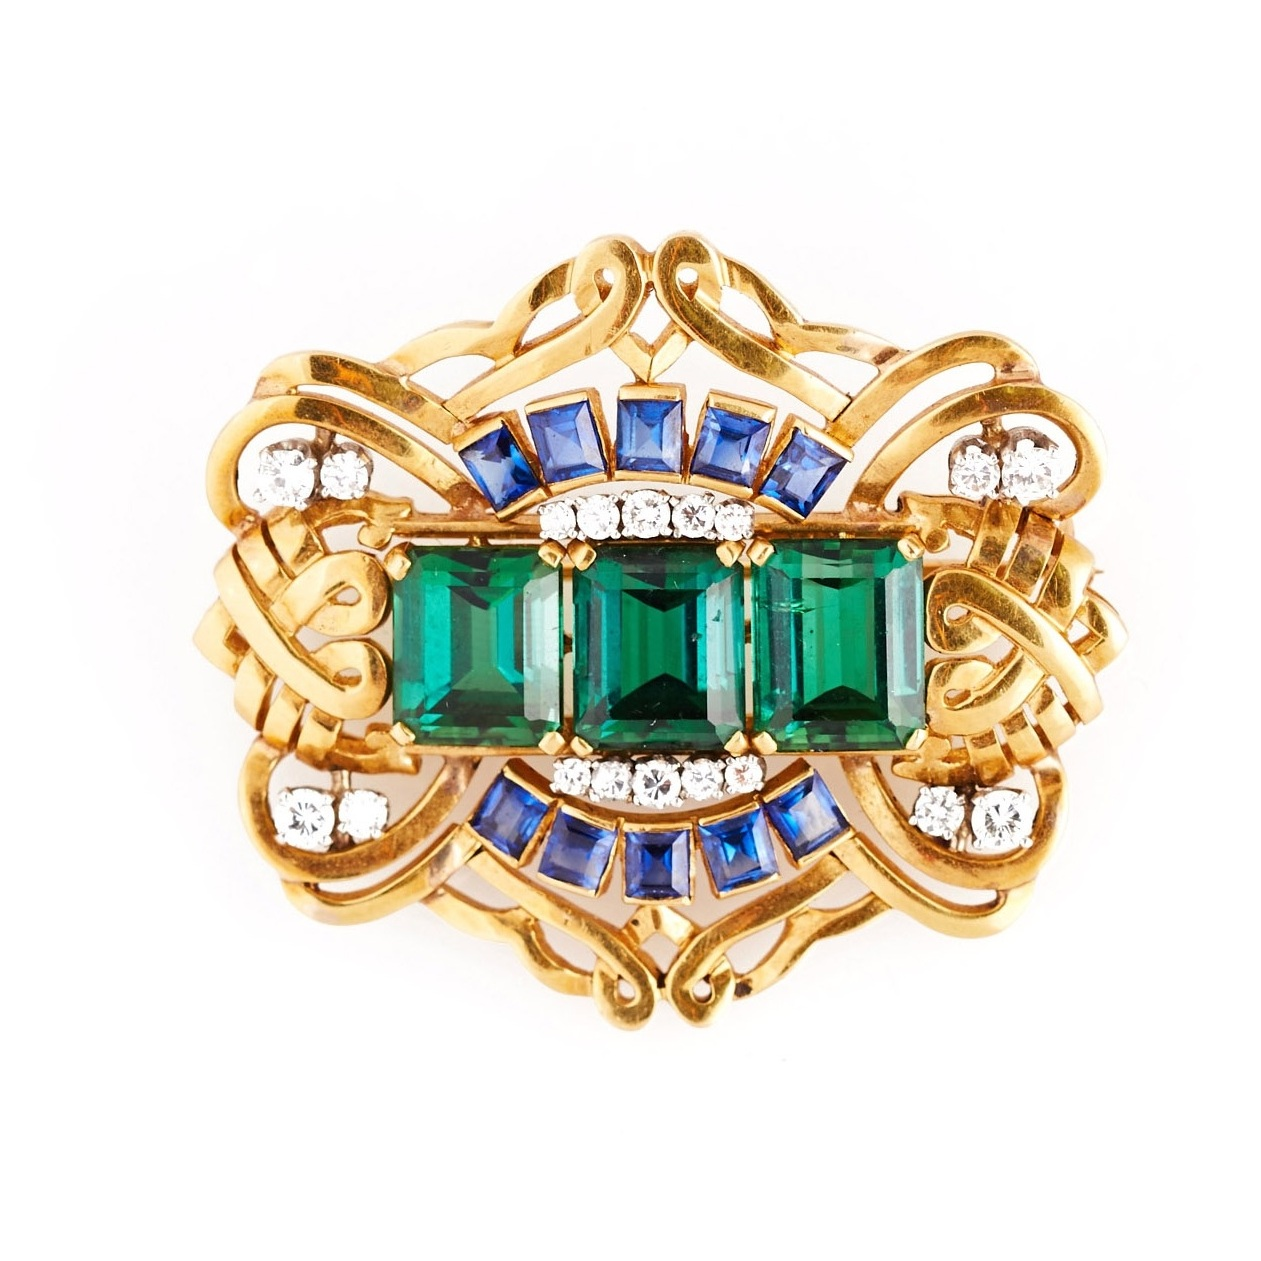 F.W. Lawrence Gem-Set Brooch